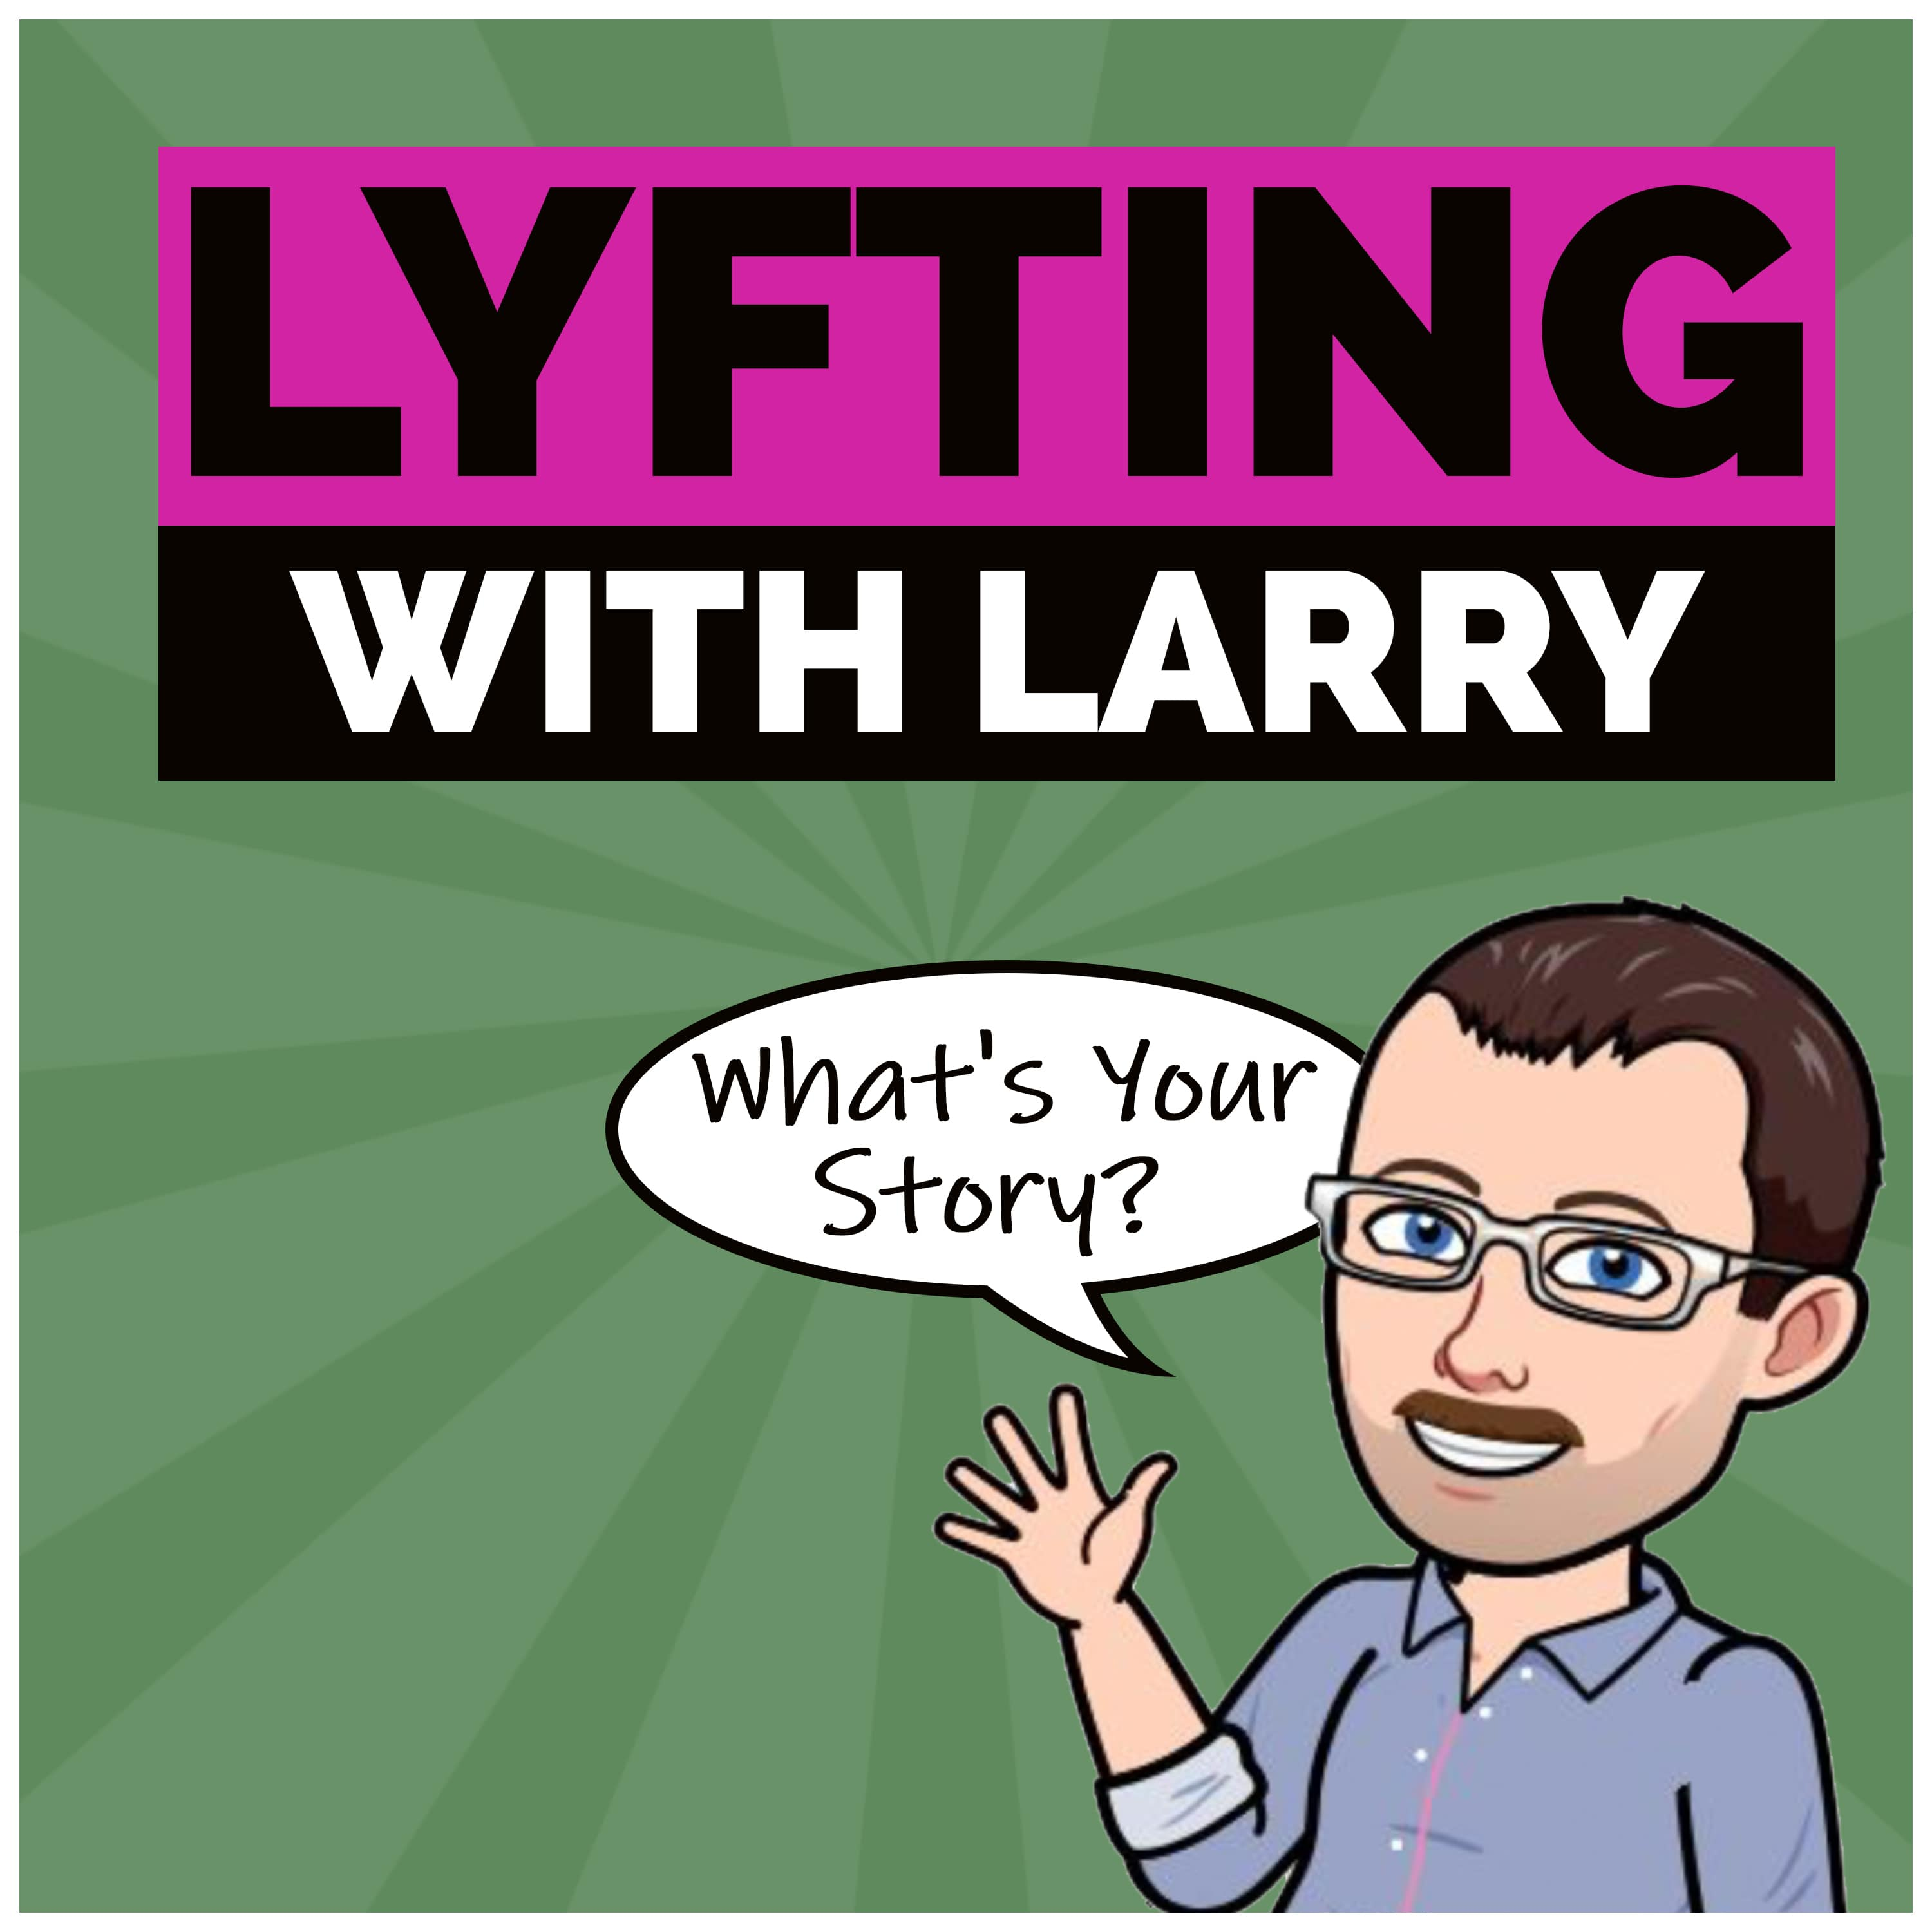 Lyfting With Larry.....What's Your Story?